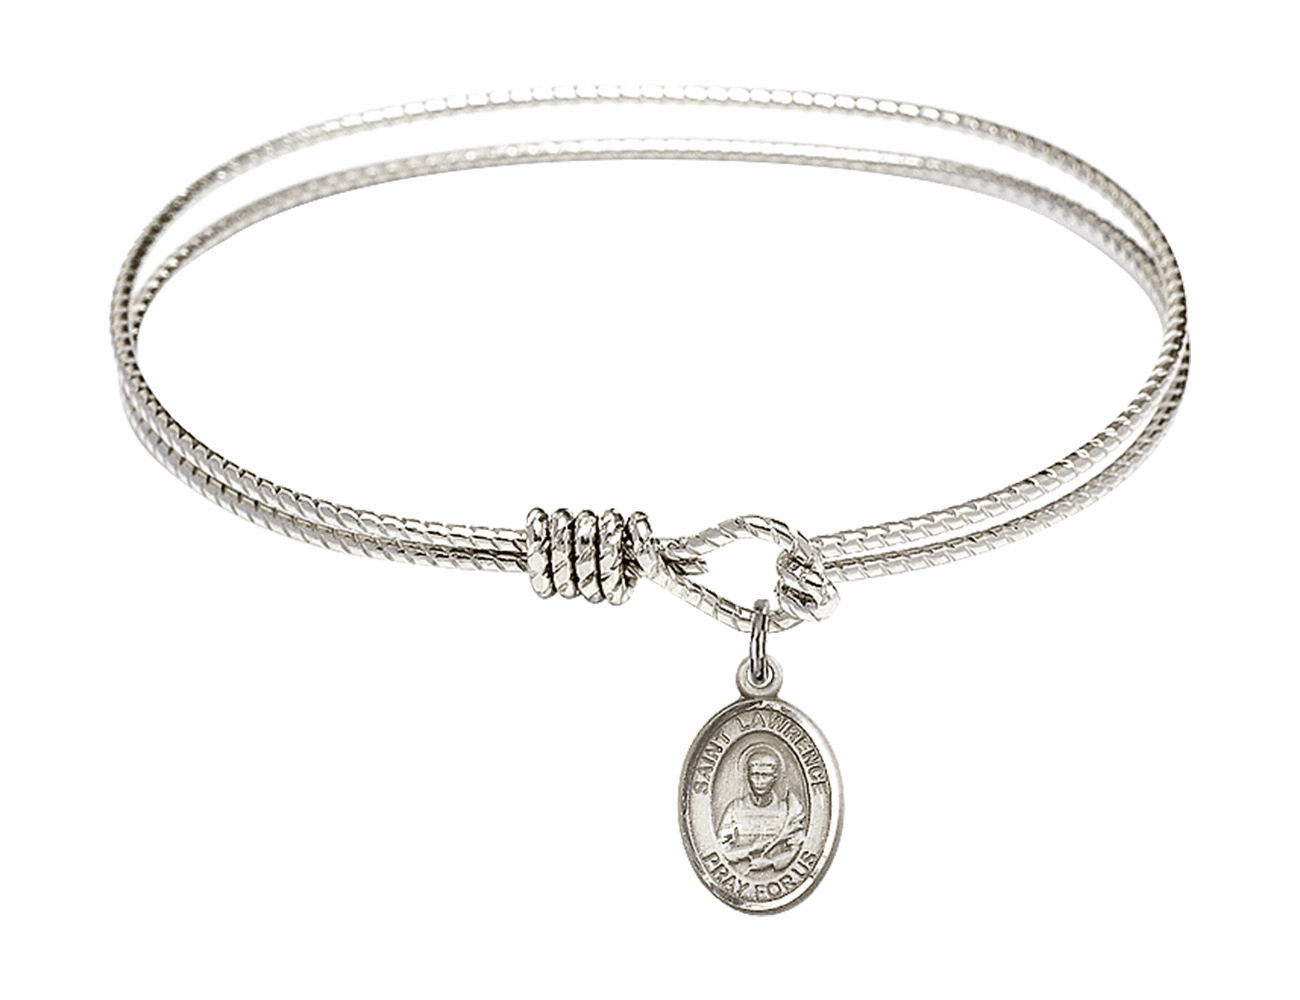 St Lawrence Textured Bangle w/Sterling Charm Bracelet by Bliss